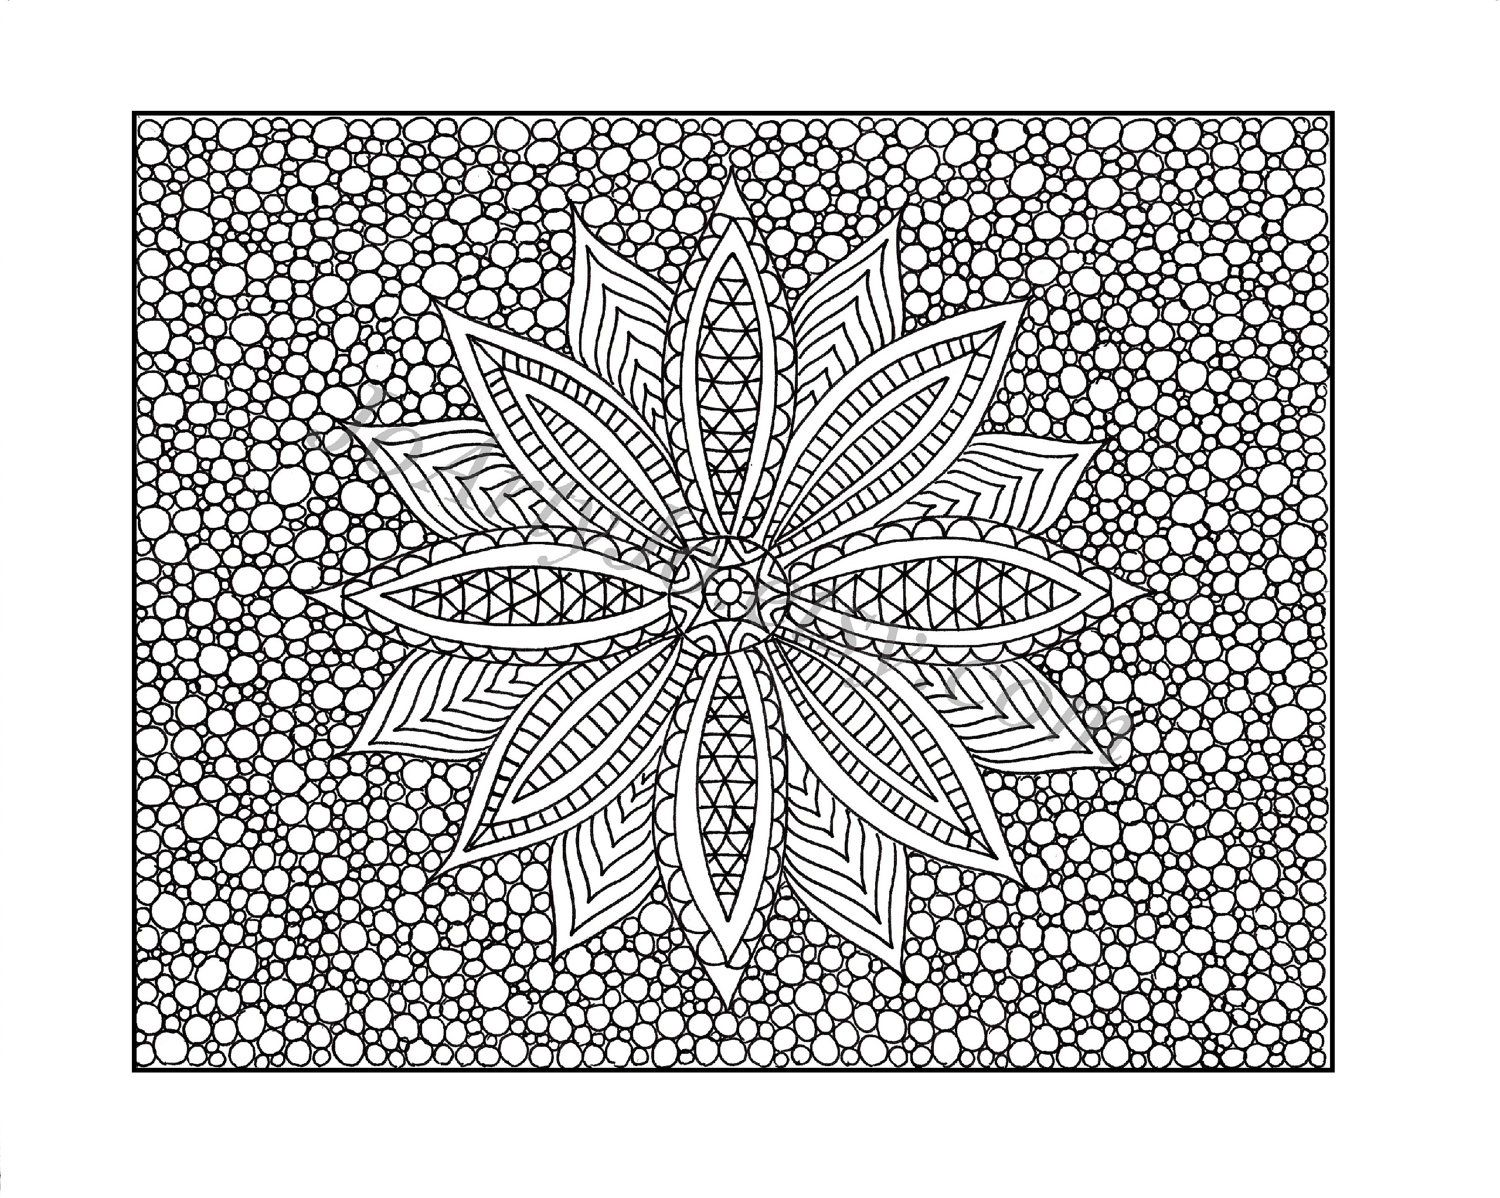 Free printable coloring pages zentangle - Free Printable Coloring Pages For Adults Only 15 Pictures